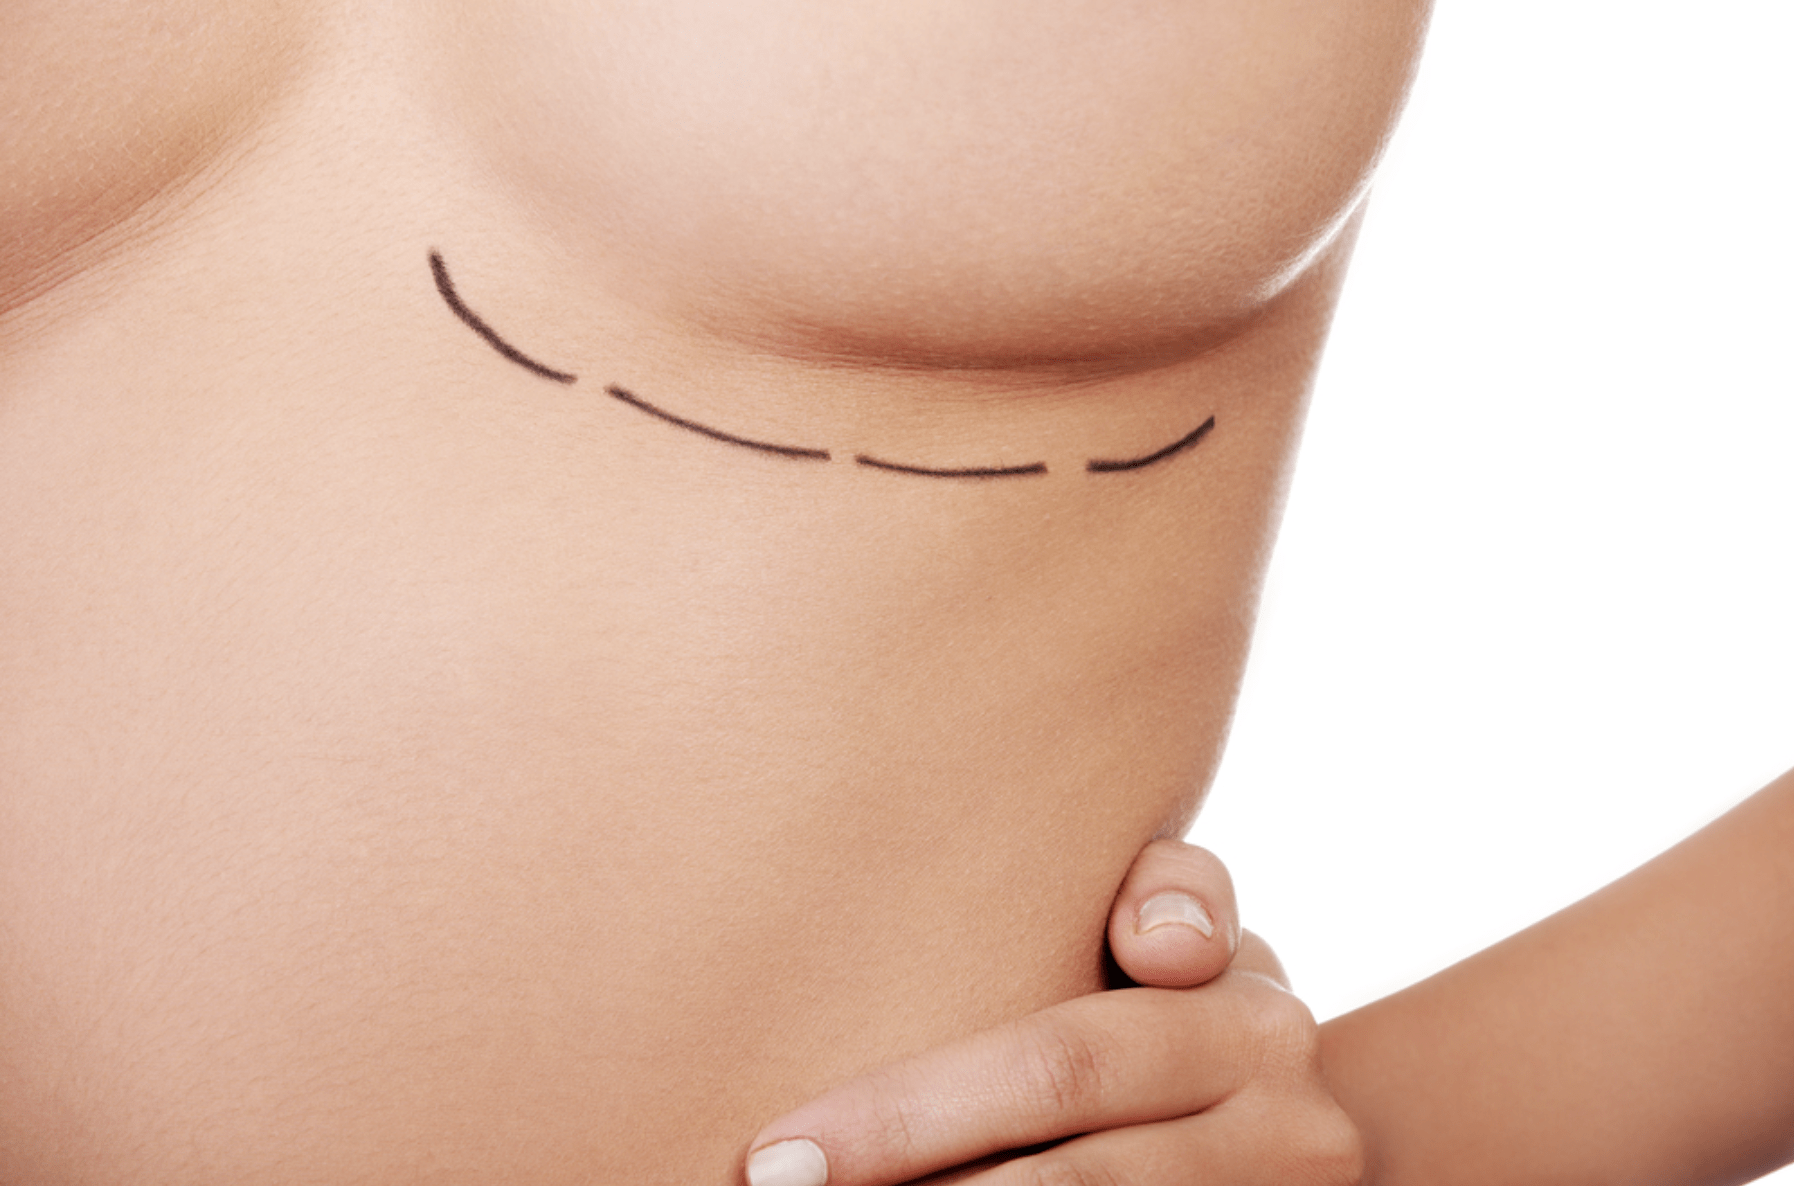 VINCENT N. ZUBOWICZ MD VNZ Plastic Surgery Emory University Hospital & Health Clinic 5 Star Rated Facelift and Breast Aug boob blog the skinny on breast surgery